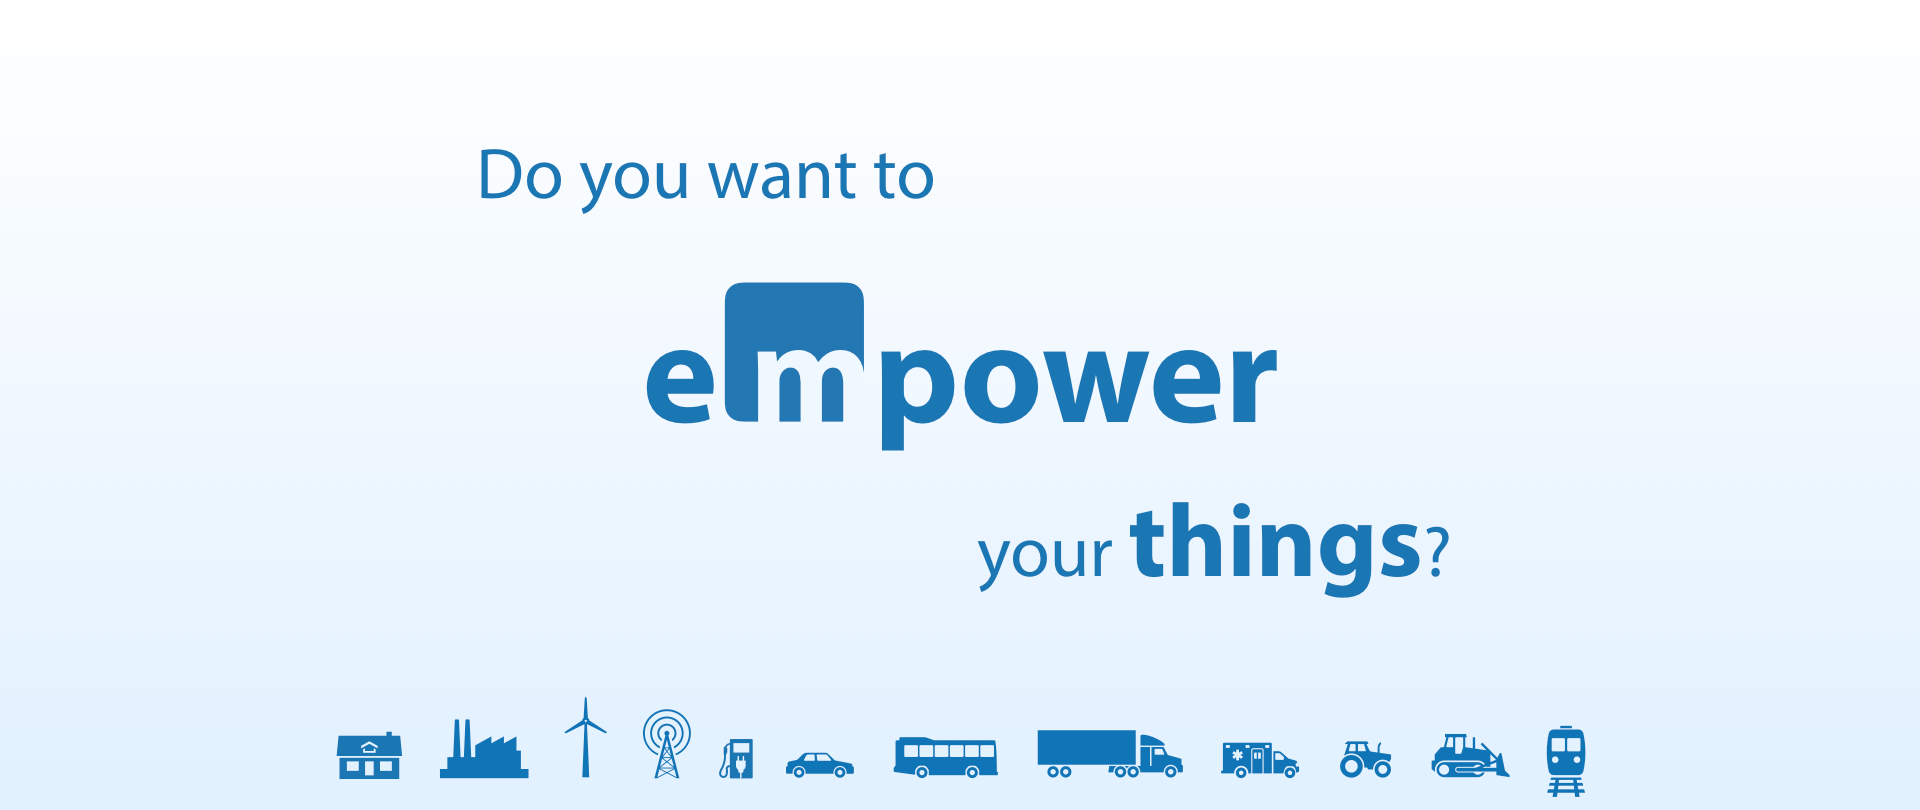 Do you want to empower your things?